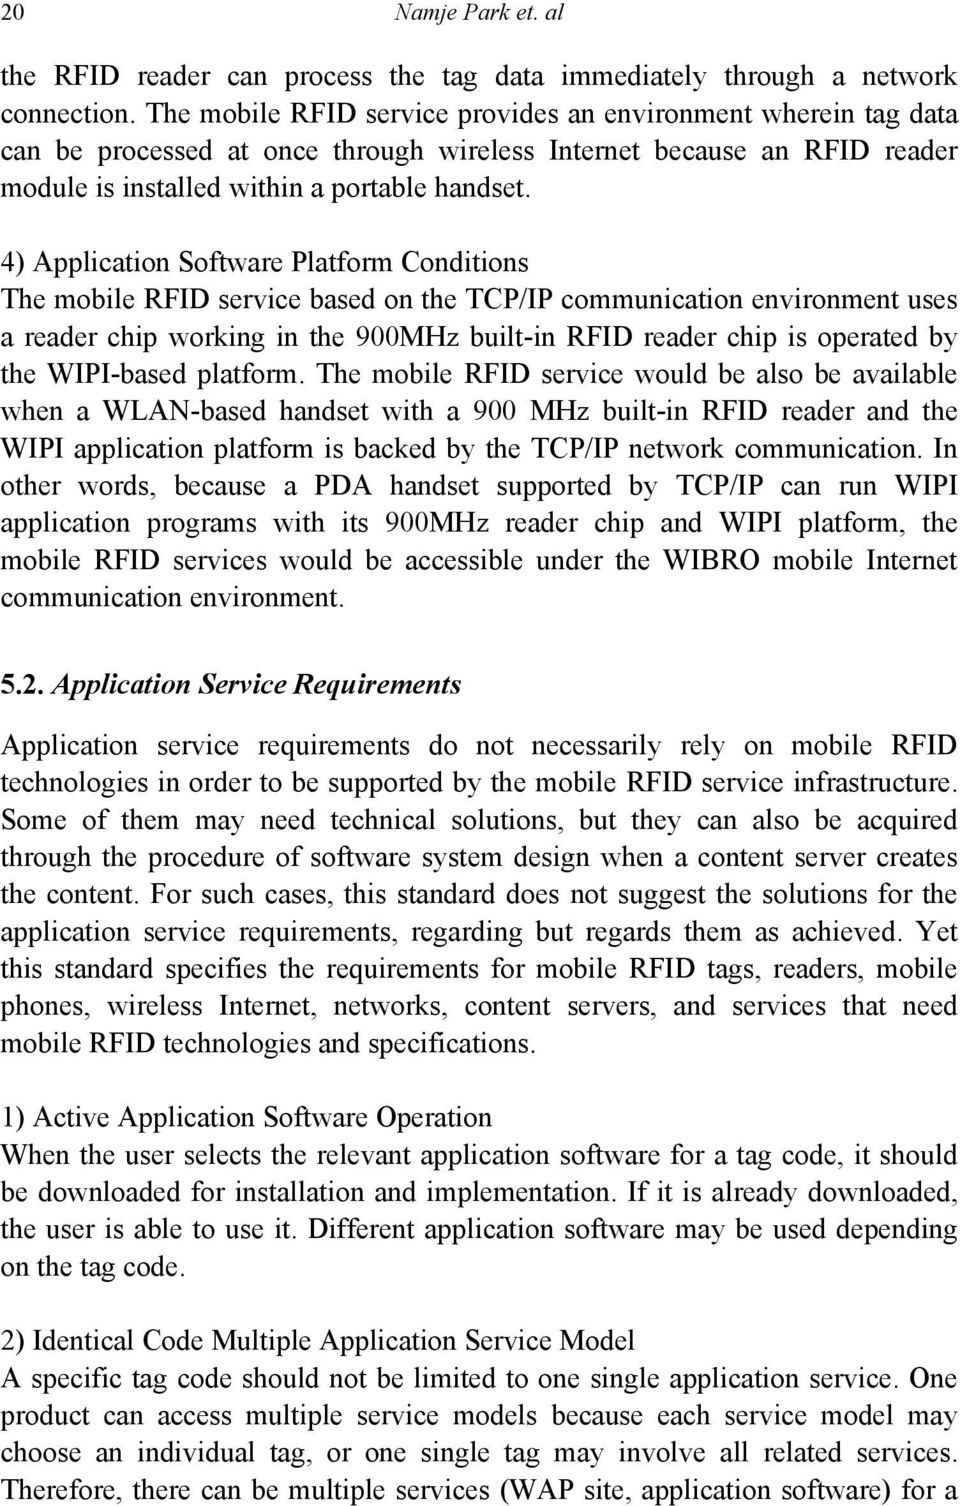 4) Application Software Platform Conditions The mobile RFID service based on the TCP/IP communication environment uses a reader chip working in the 900MHz built-in RFID reader chip is operated by the